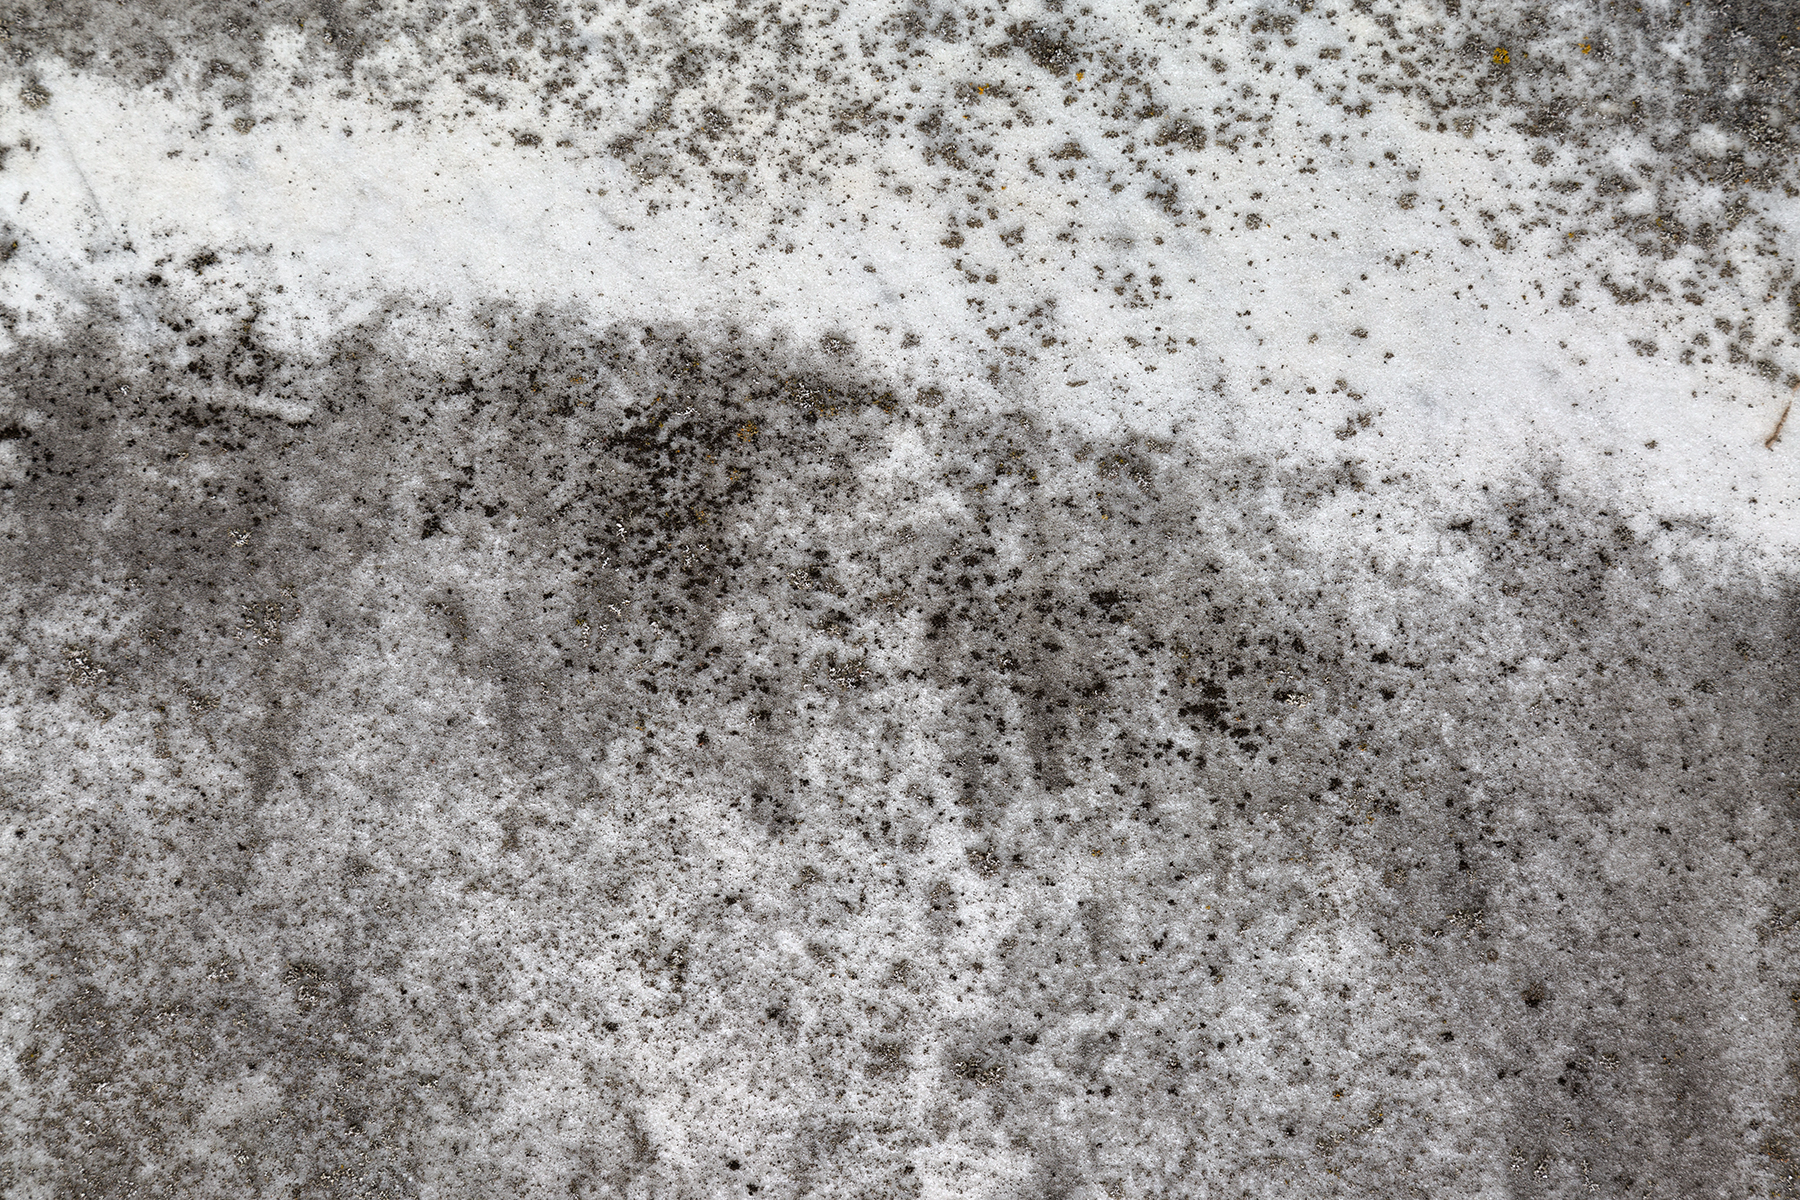 Grunge Stone Texture - HDR, Age, Mold, Raw, Range, HQ Photo